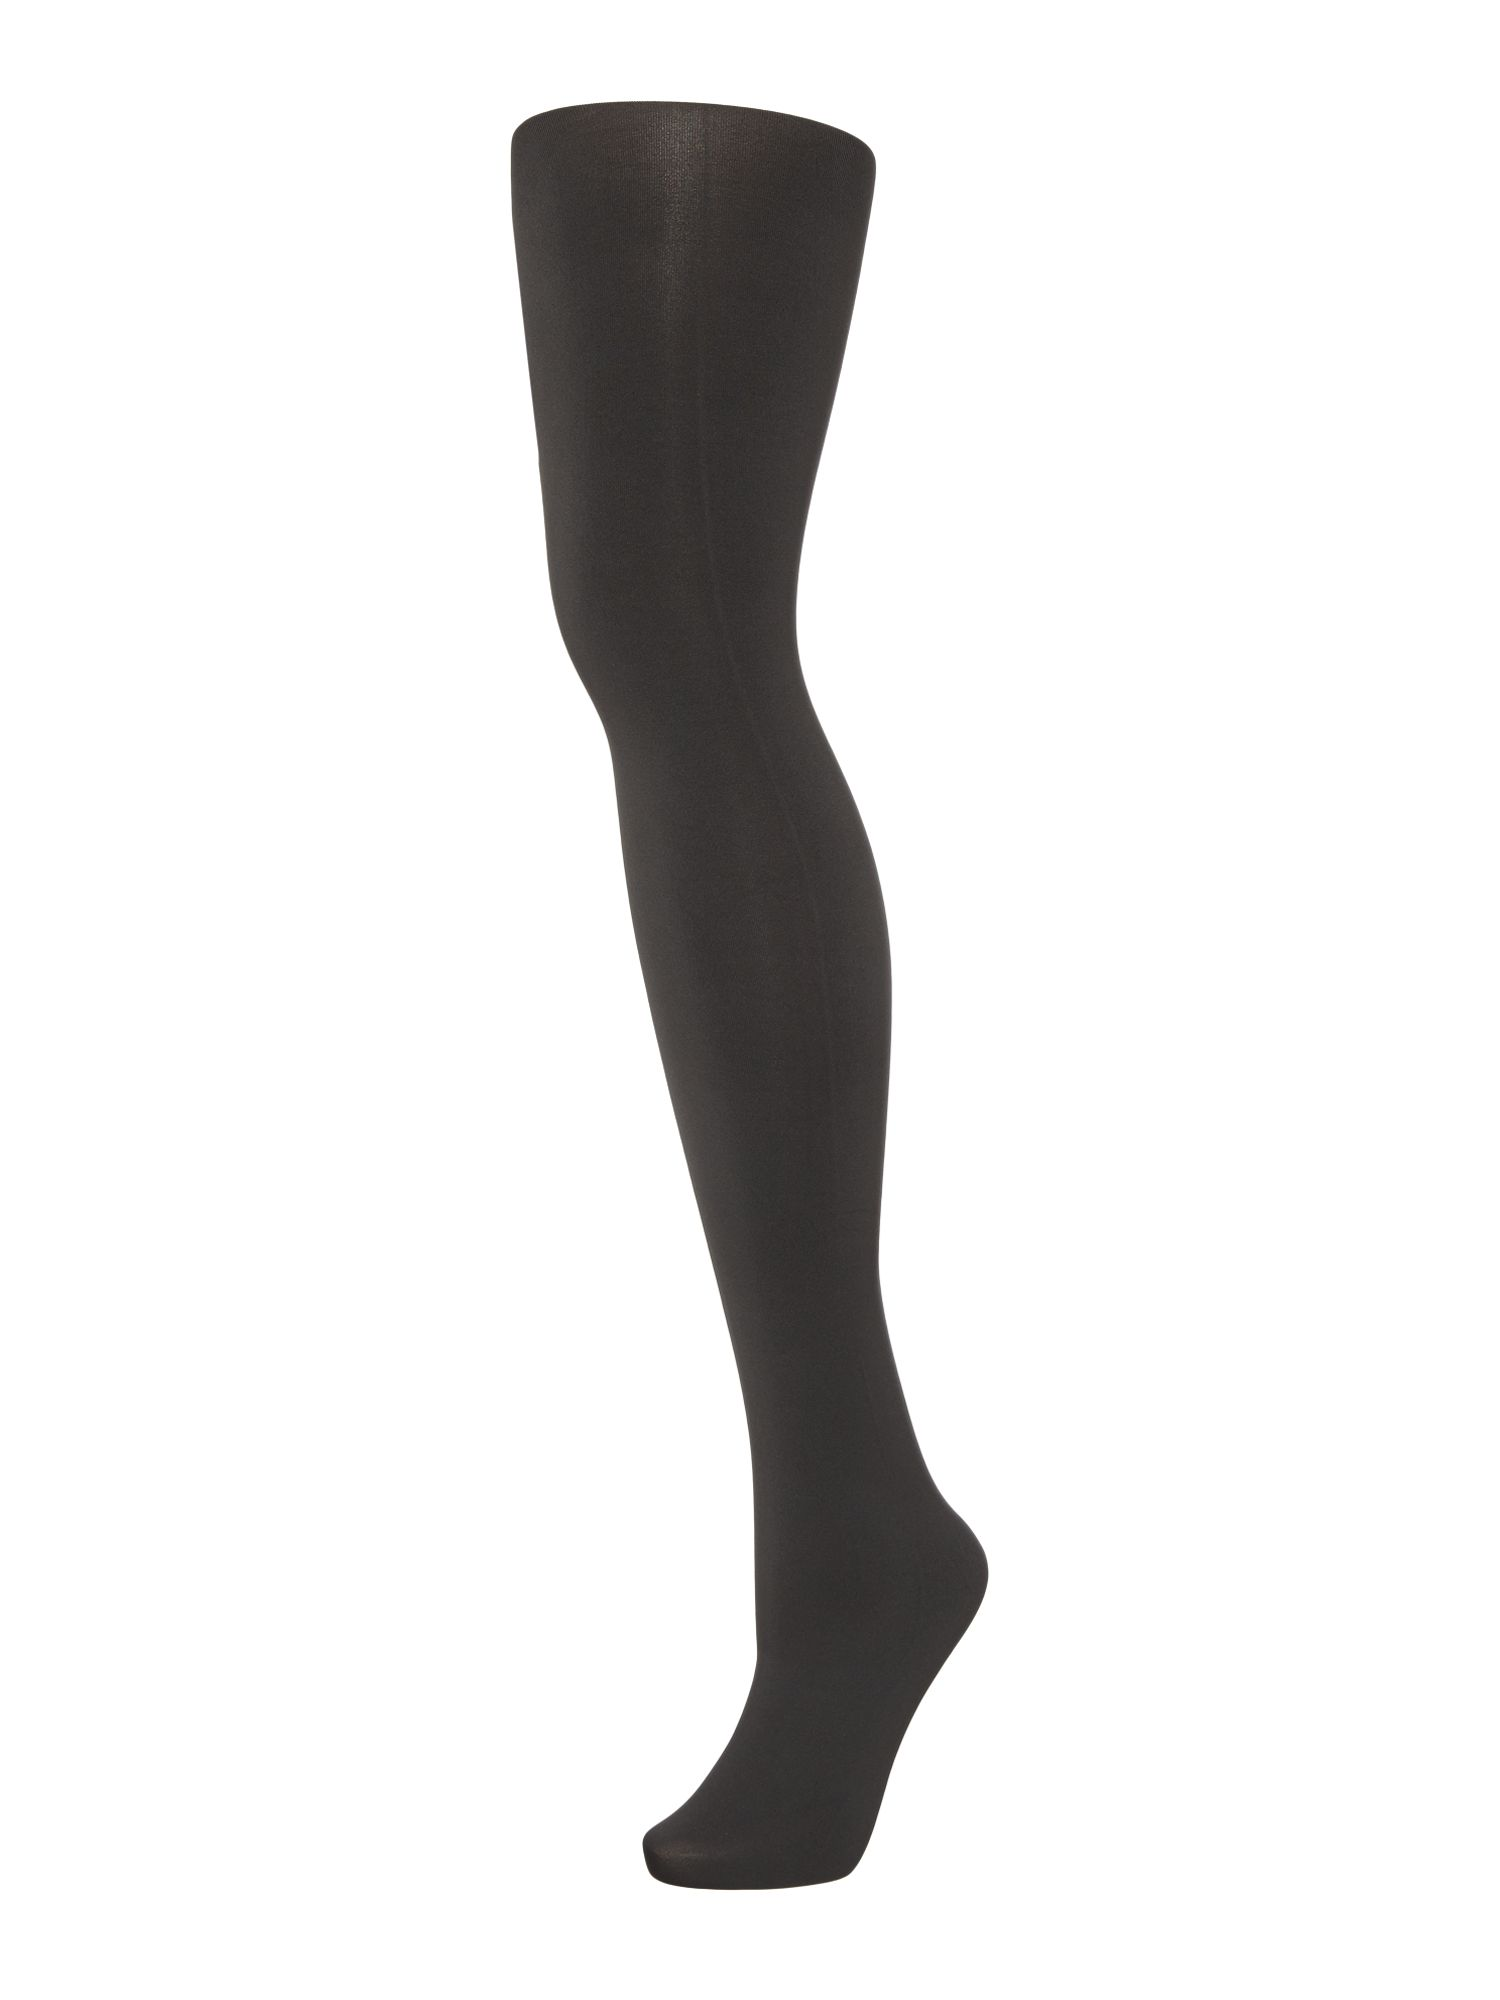 Aristoc Aristoc The ultimate luxury leg 80 denier opaque tights, Grey